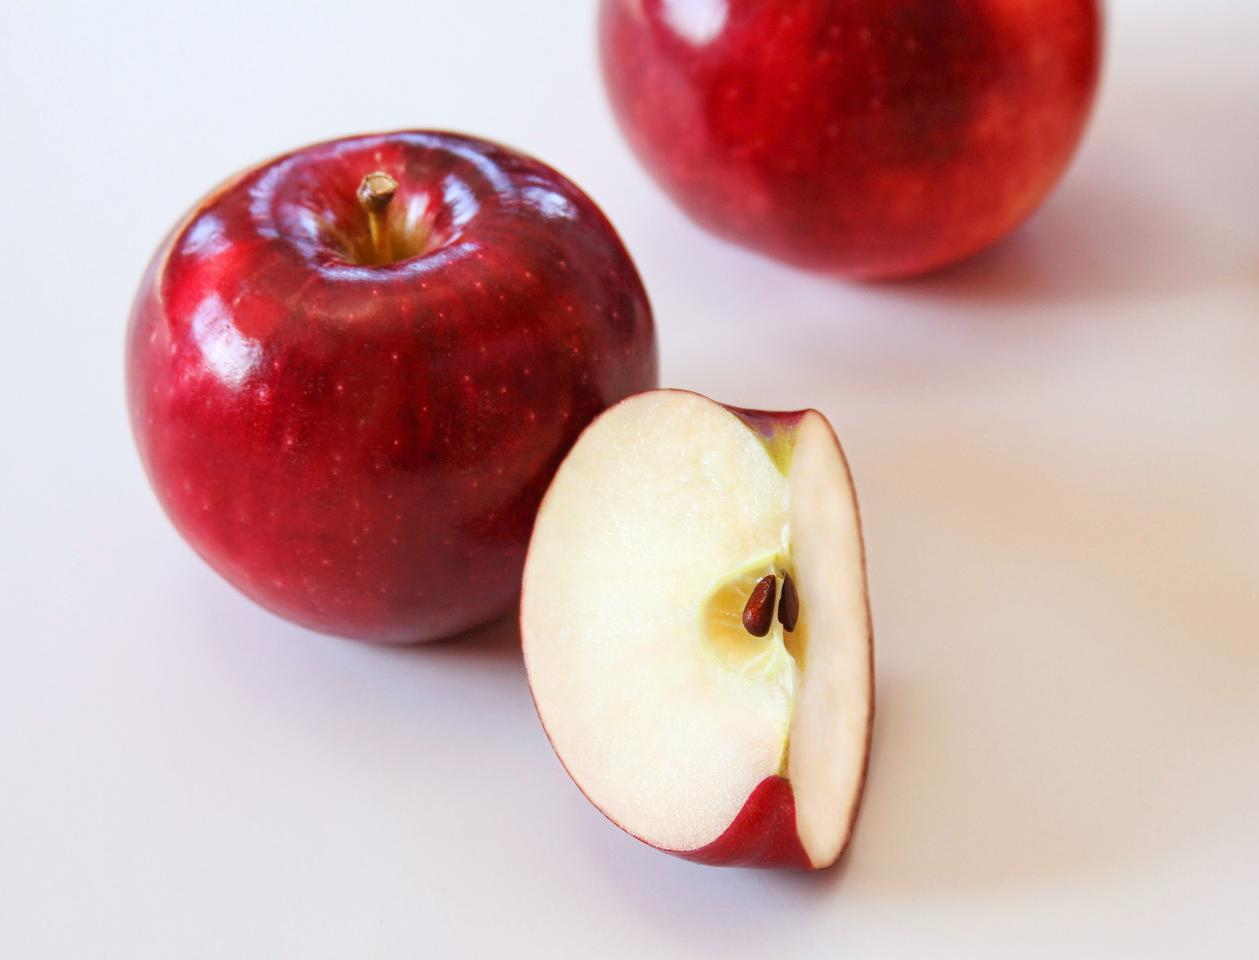 Move over Granny Smith and Red Delicious, there's a hot new apple in town and it's built to outlast them all